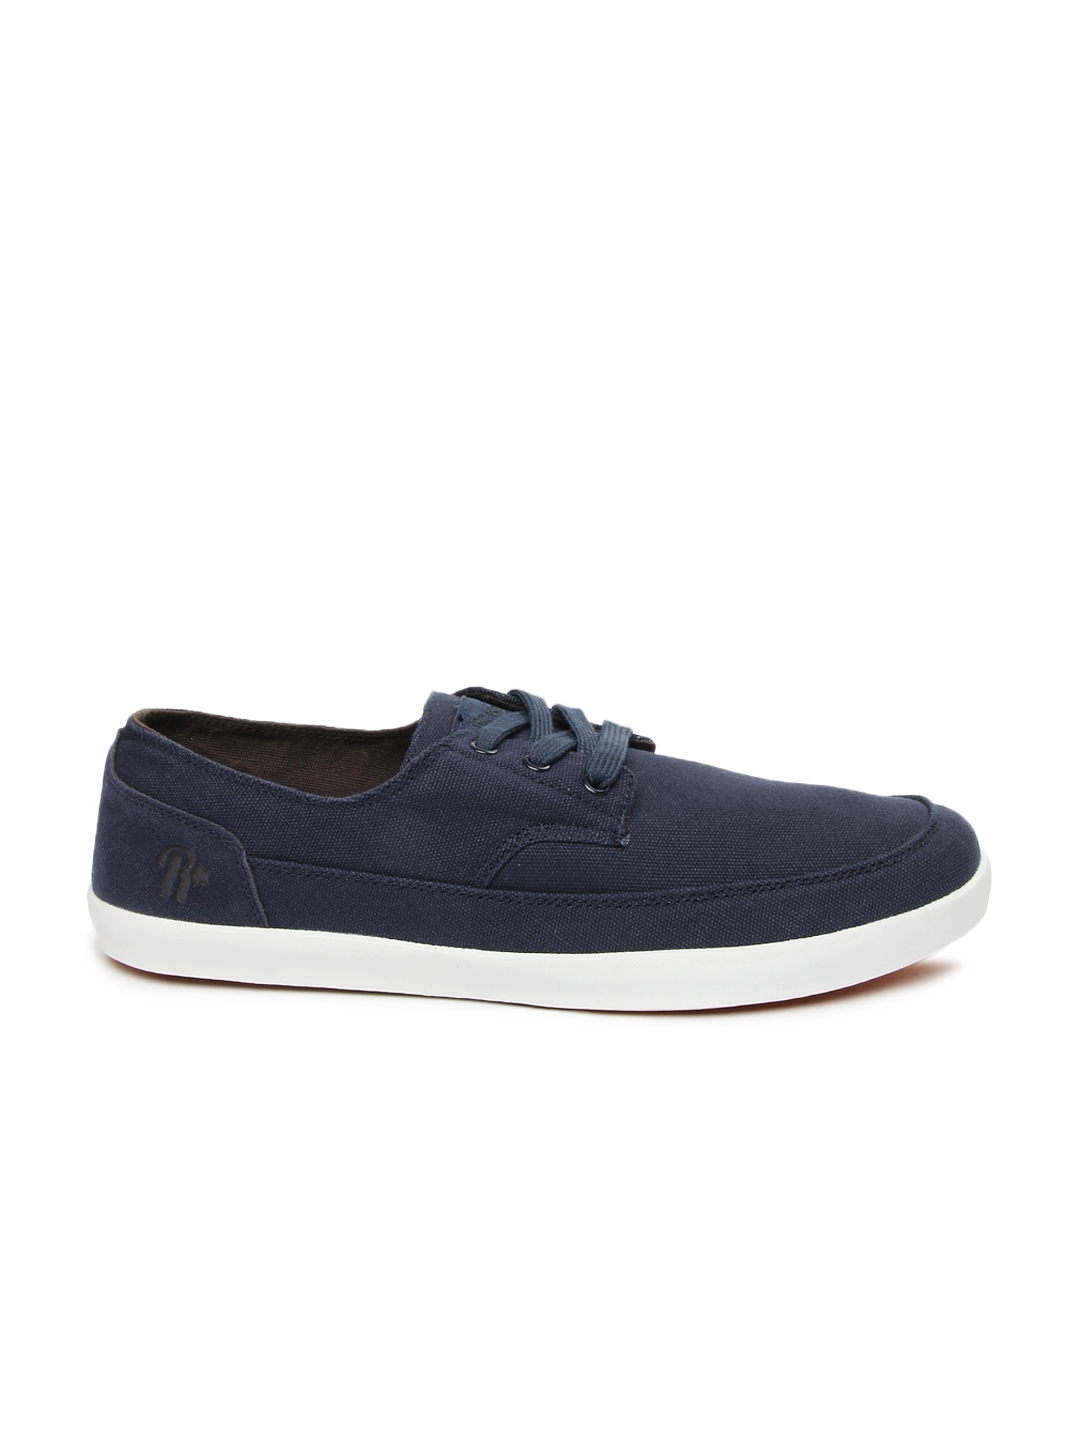 myntra roadster blue casual shoes 419441 buy myntra